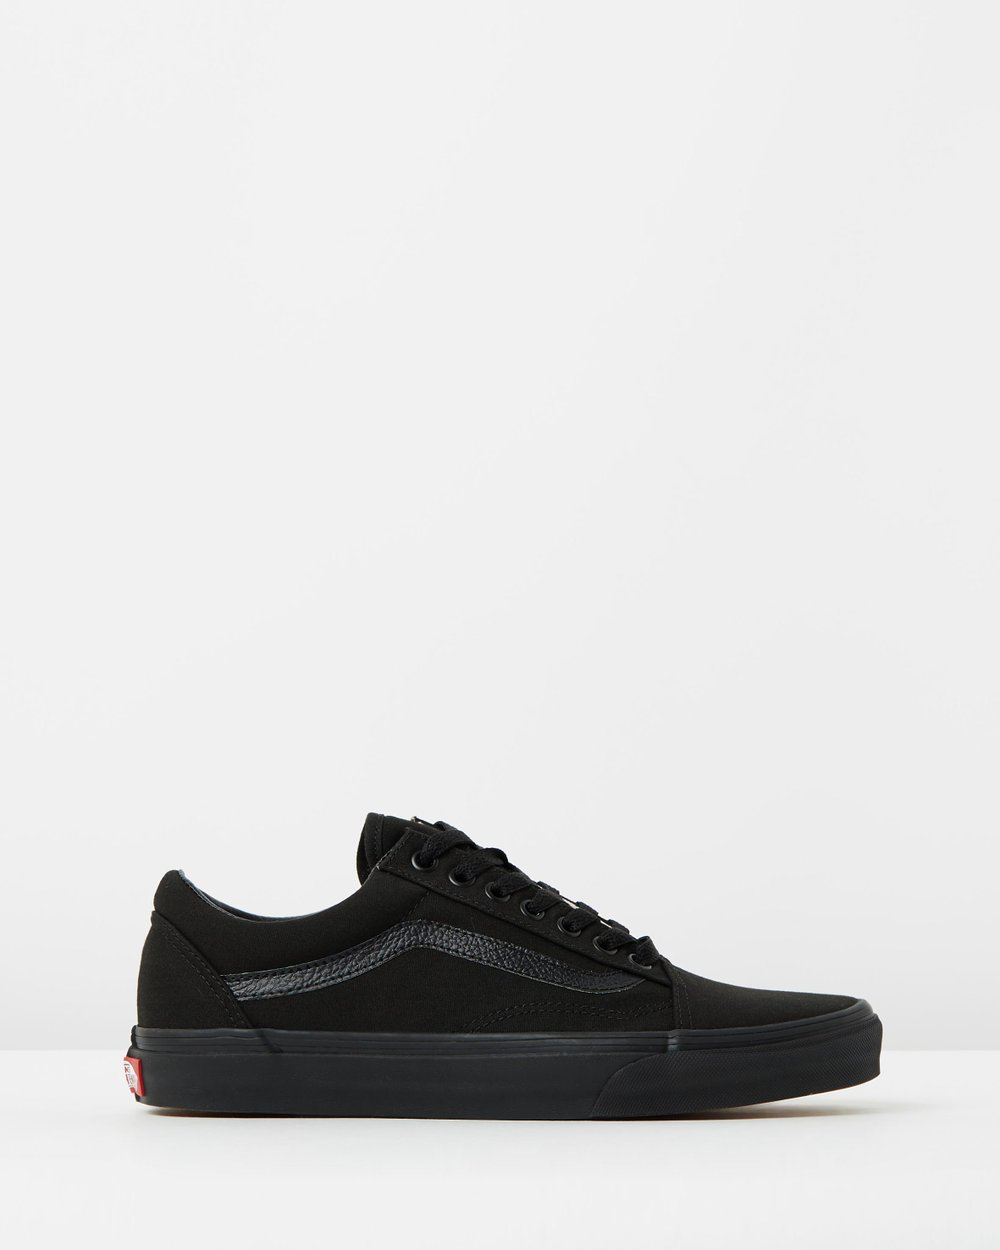 2deb4493d44d Old Skool by Vans Online